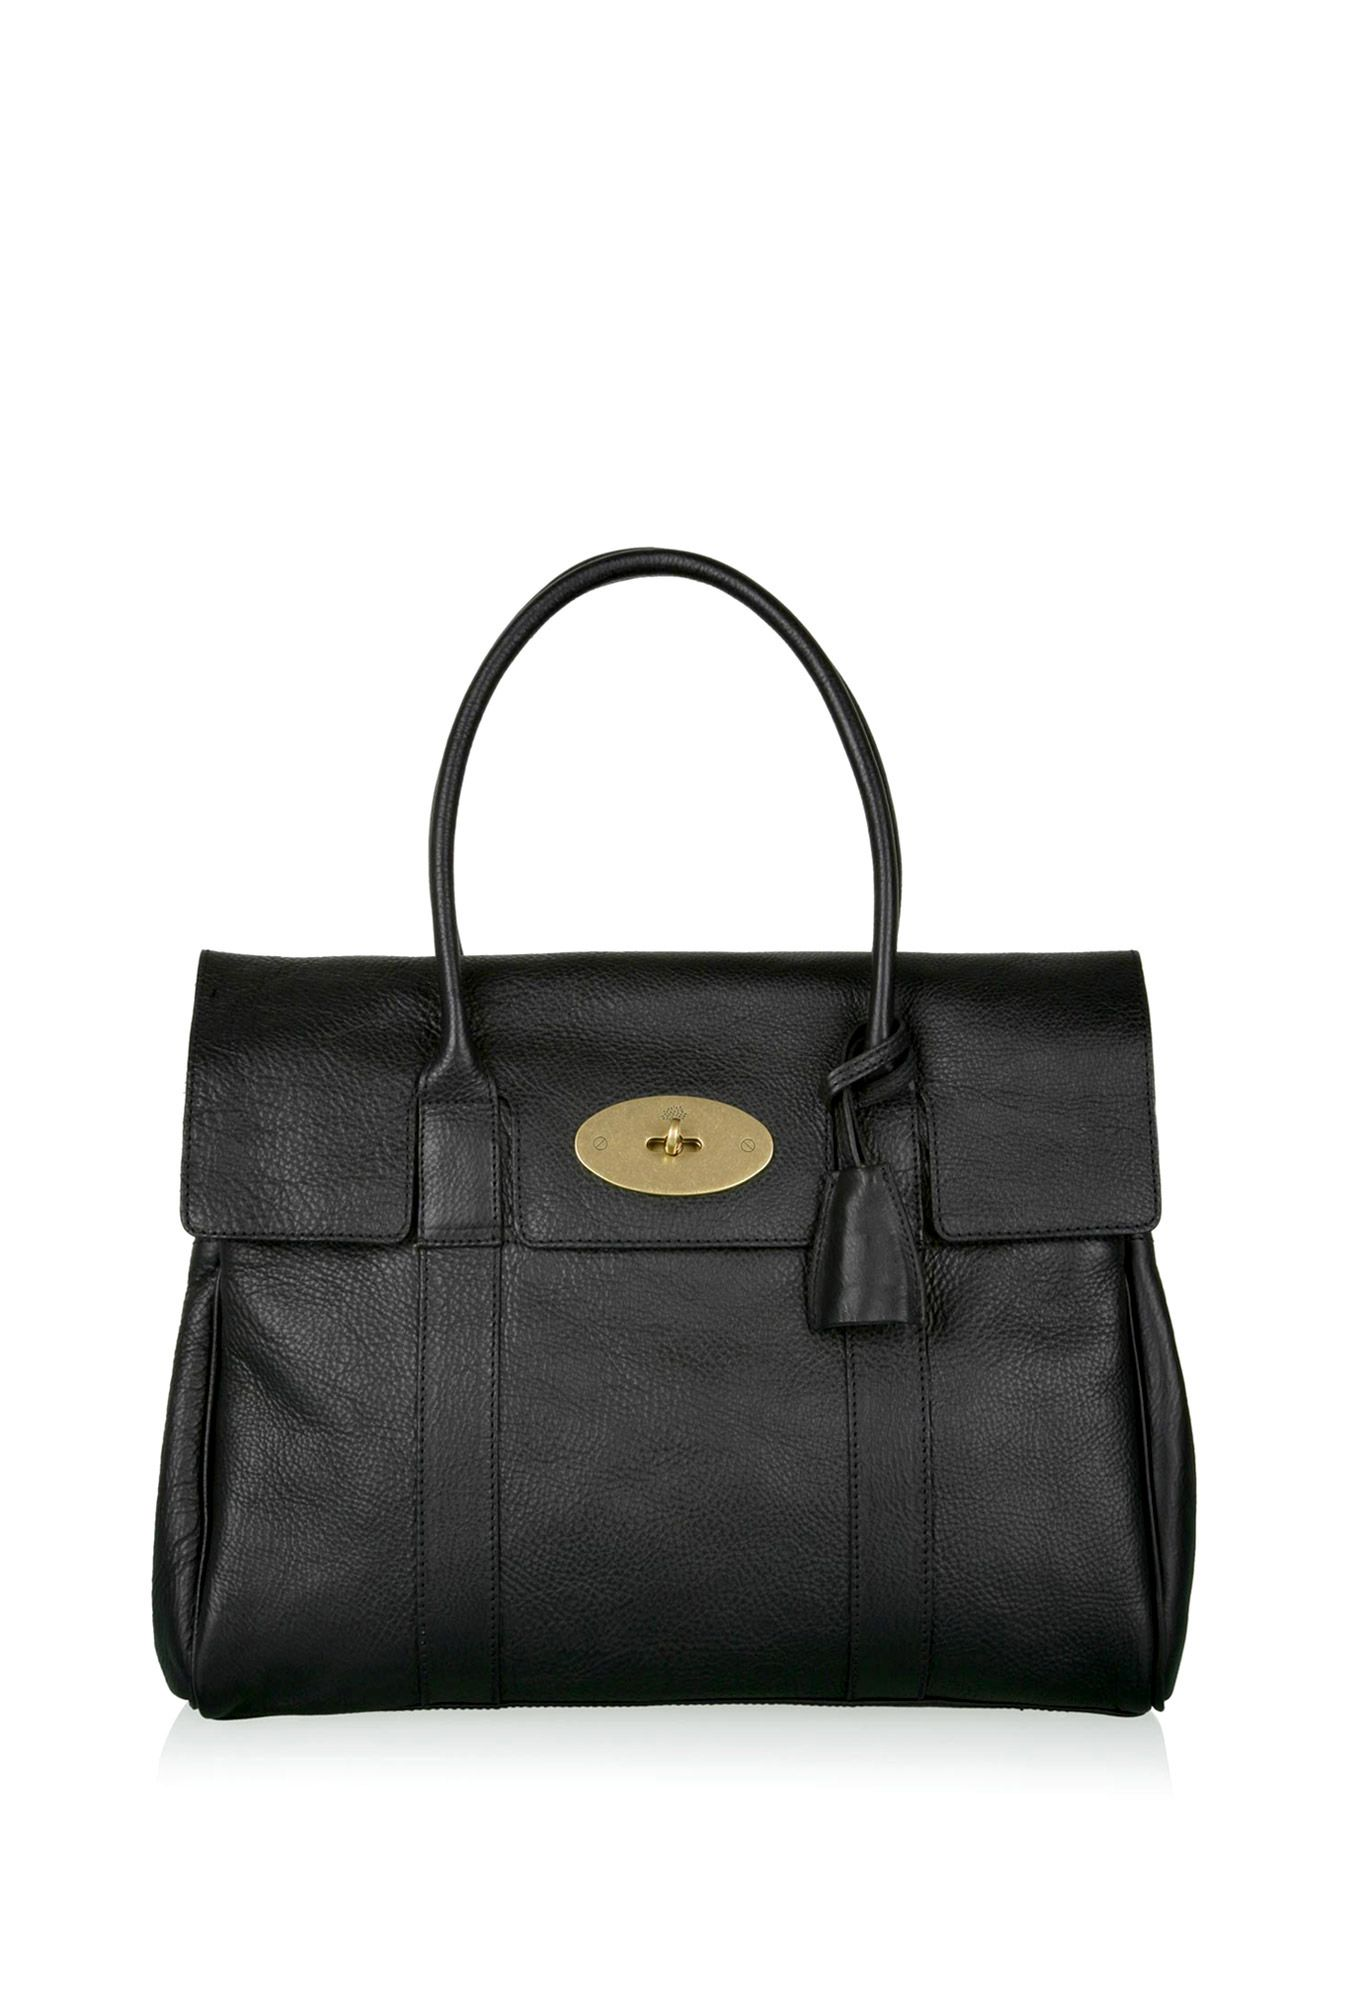 classic mulberry bag | Accsesorios | Pinterest | Bag, Wardrobes ...